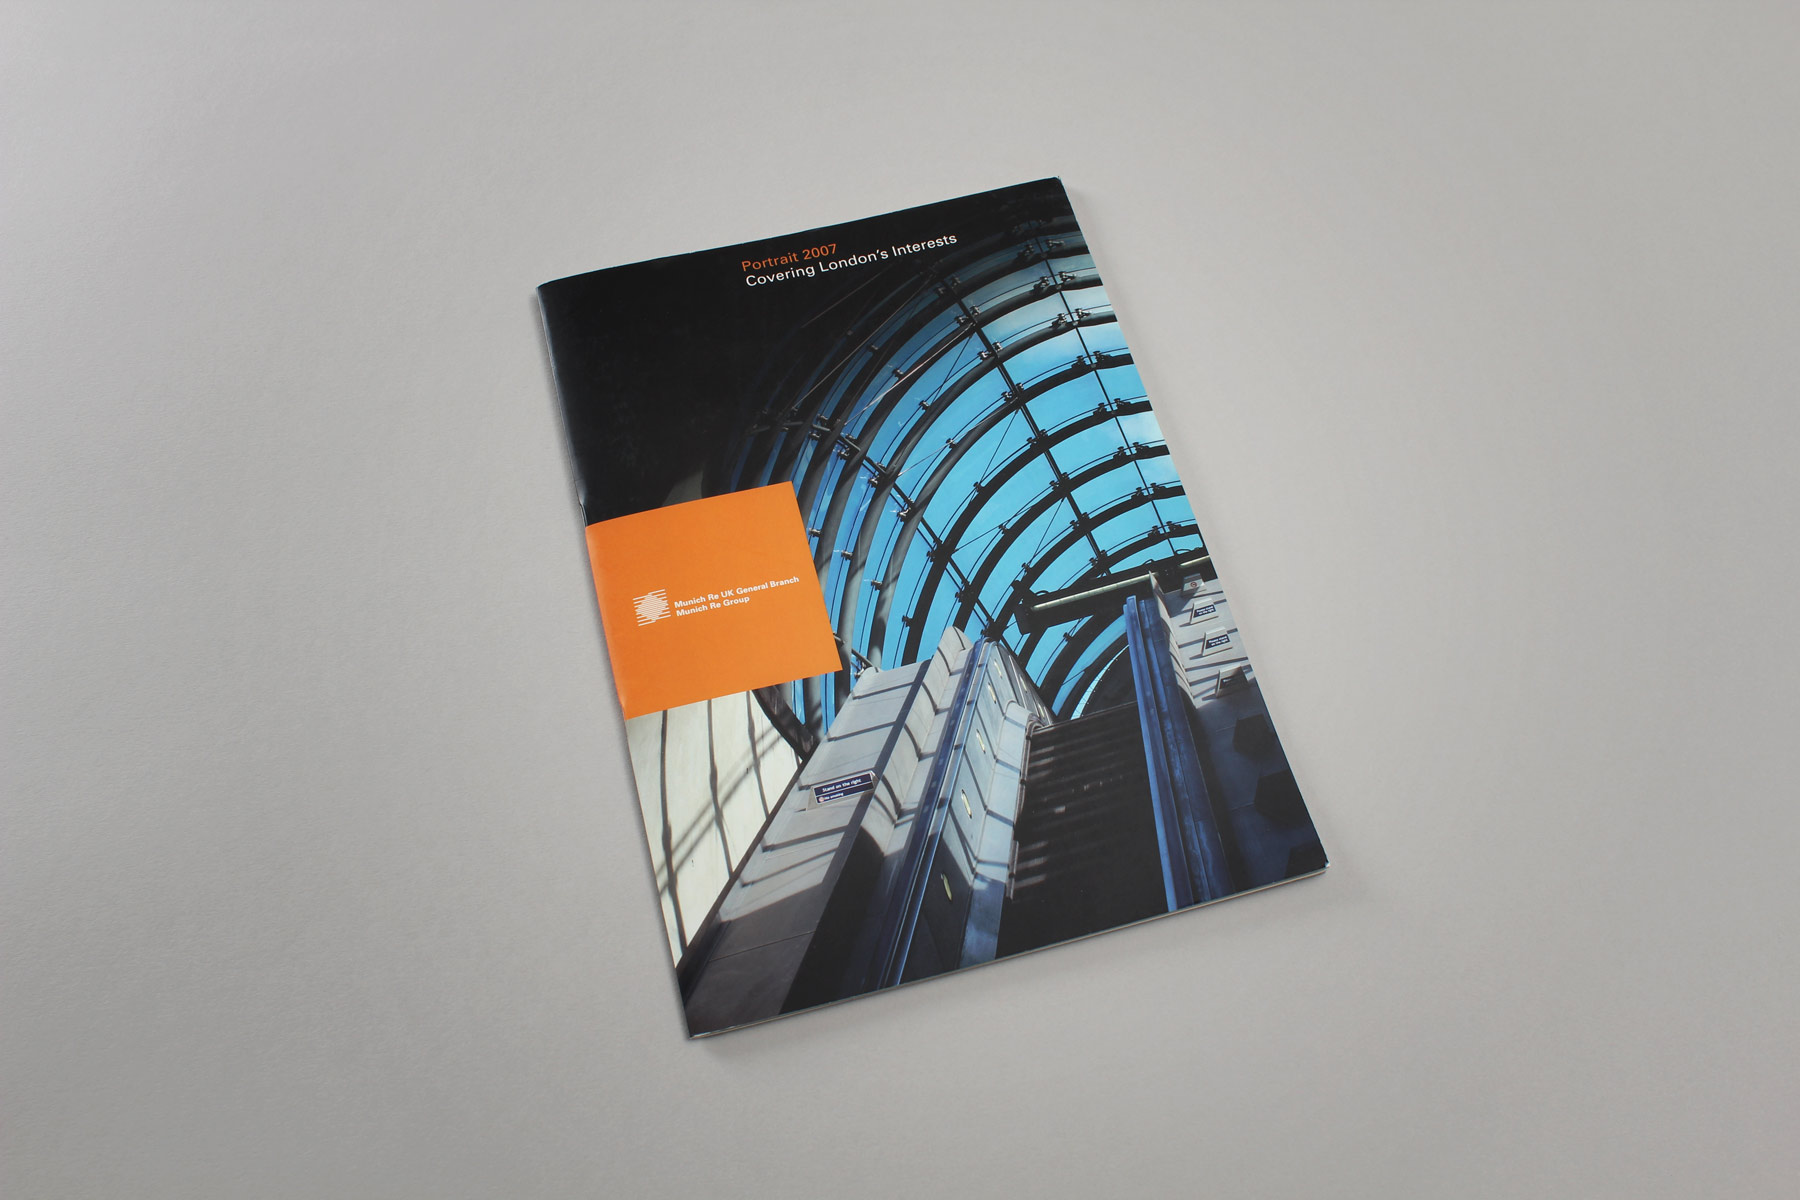 We used dynamic and famous roofing structures across London as a metaphor for the Munich Re business offer.